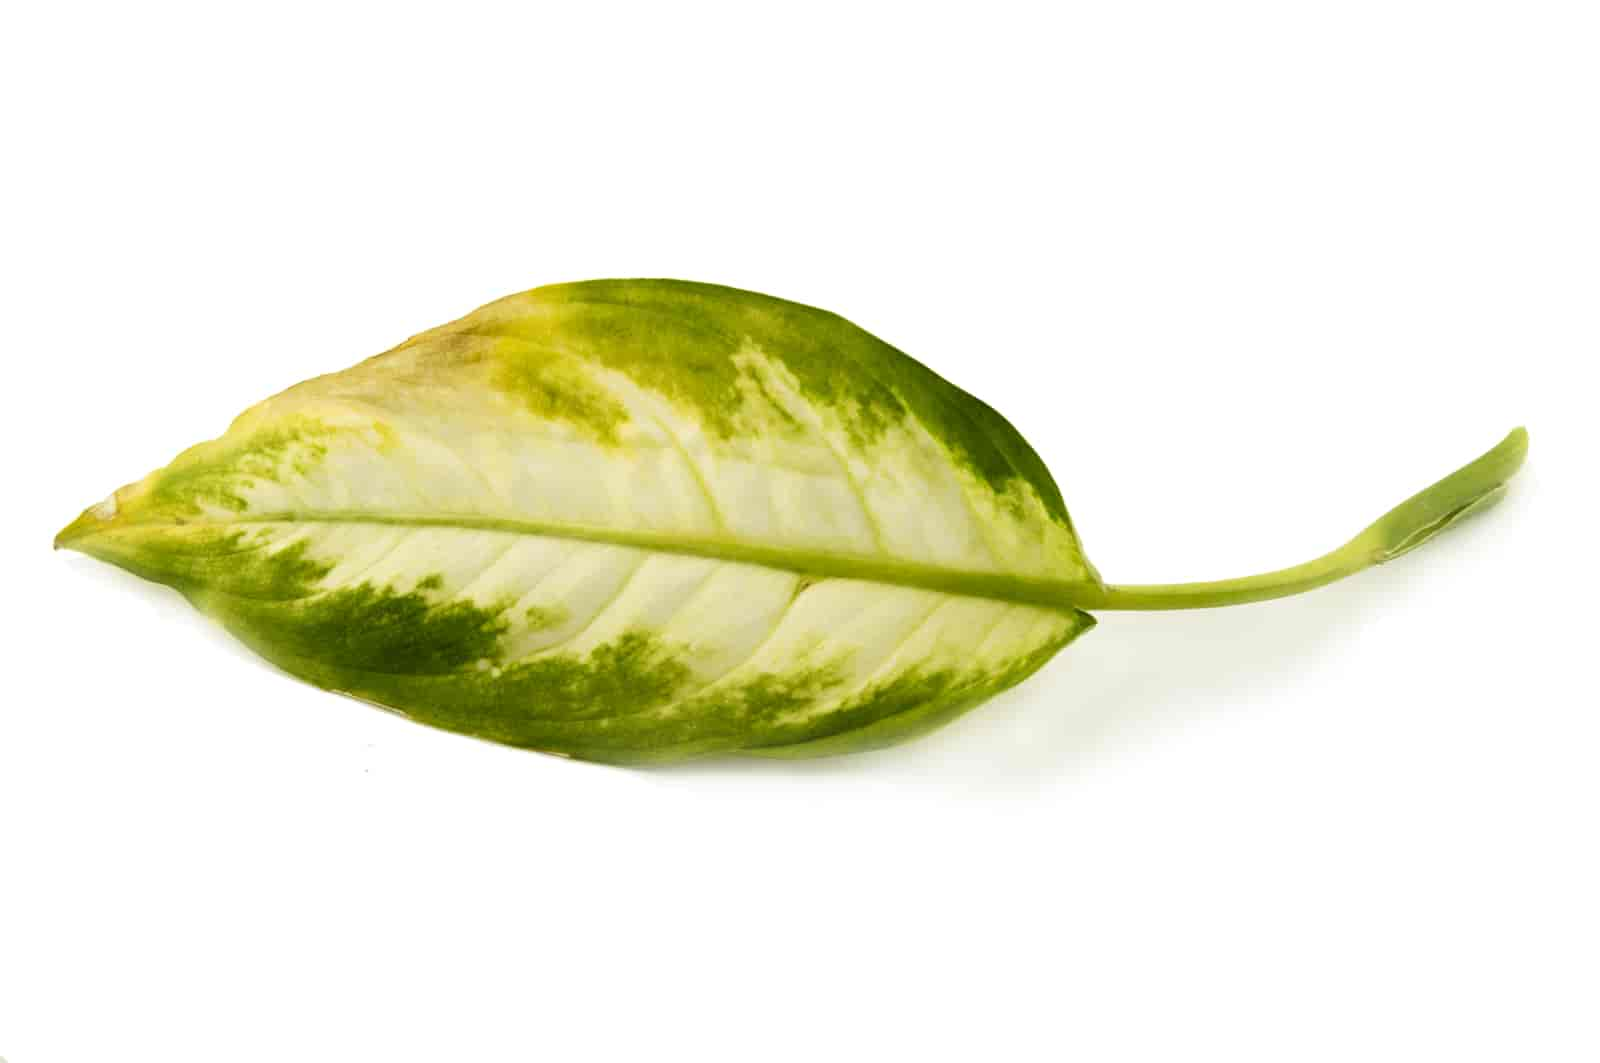 Green Plant With Yellow Spots